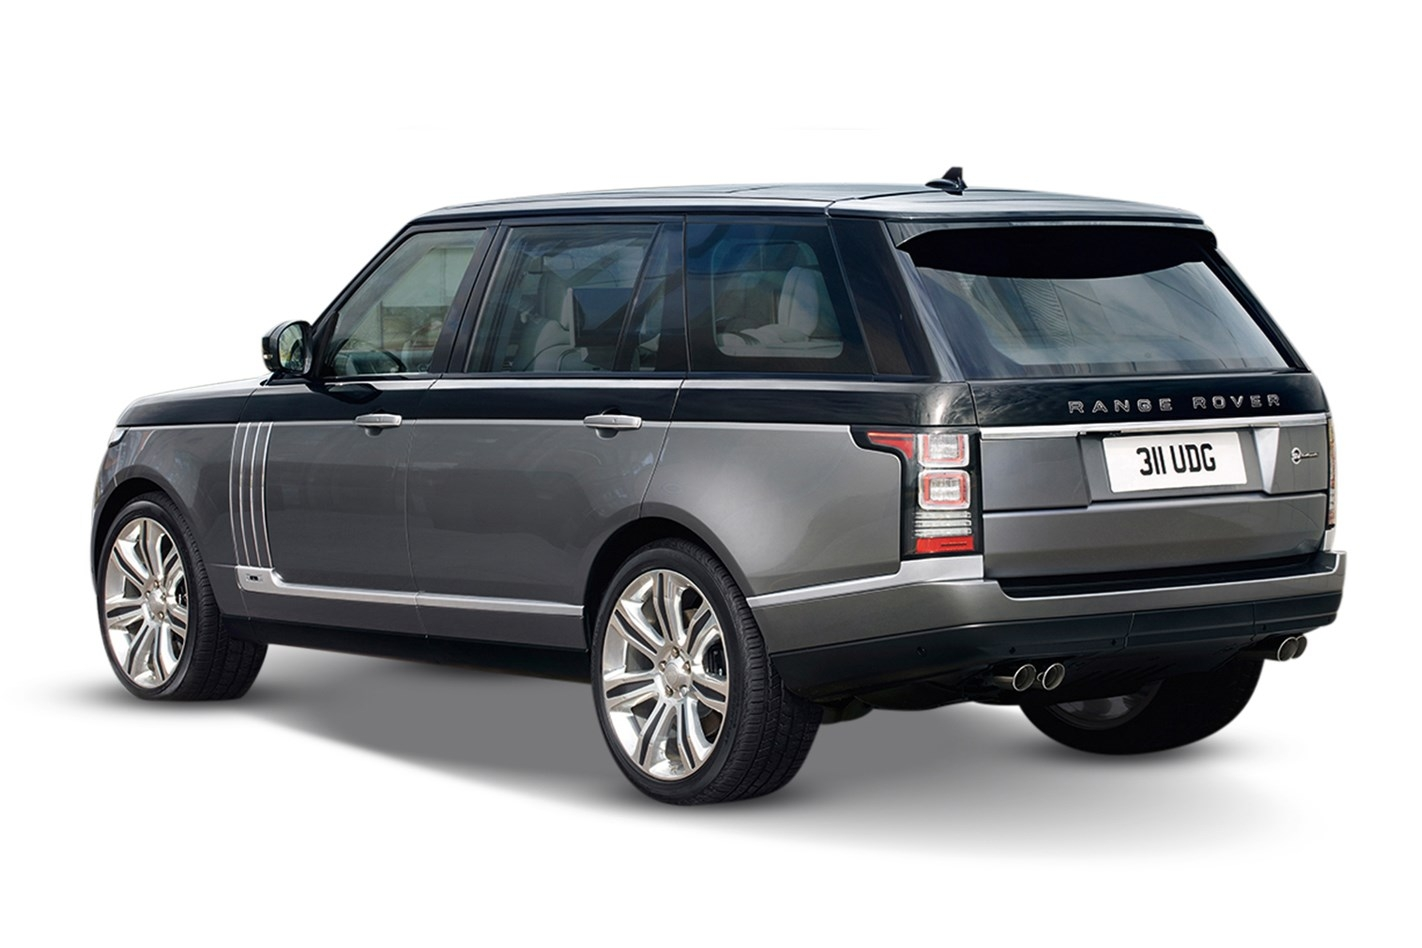 range rover vogue diesel in munich hire car rental pd. Black Bedroom Furniture Sets. Home Design Ideas